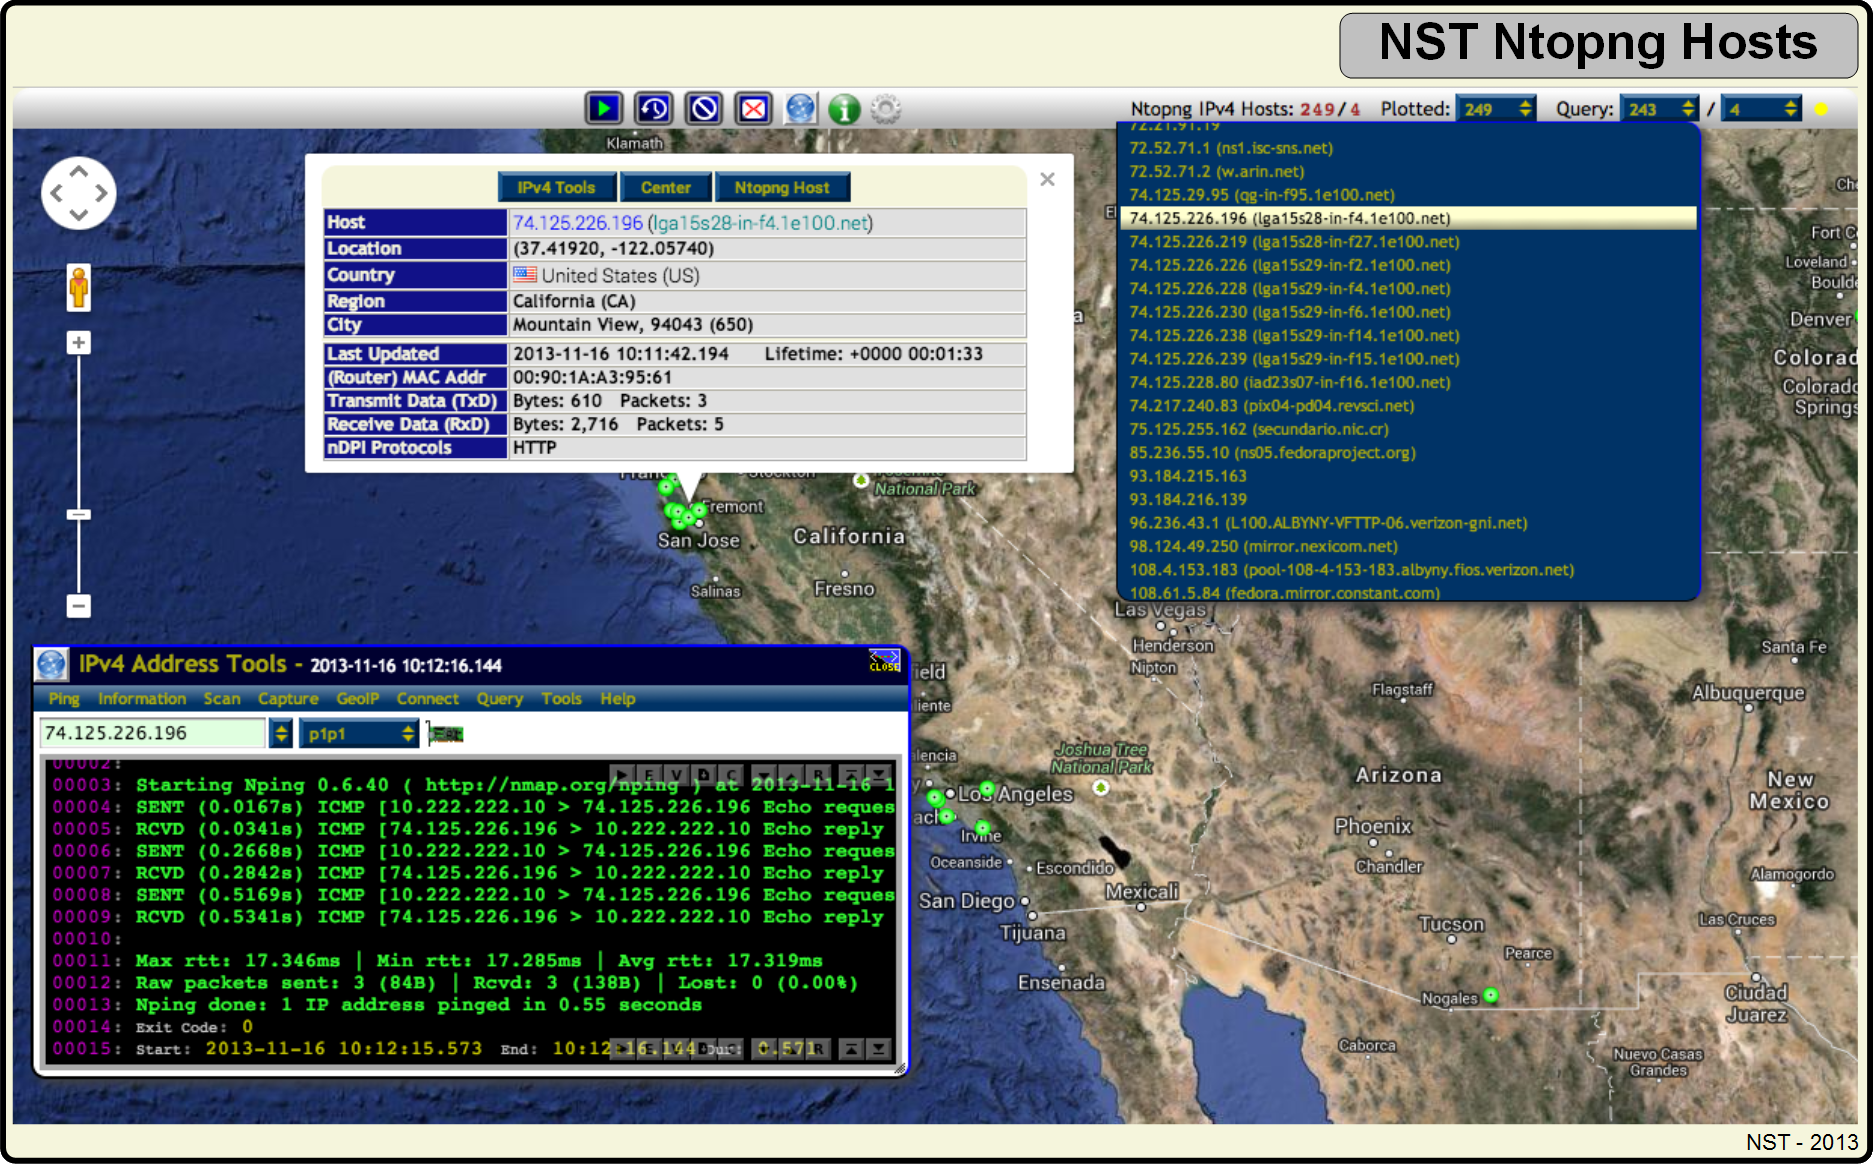 Network Security Toolkit (NST)